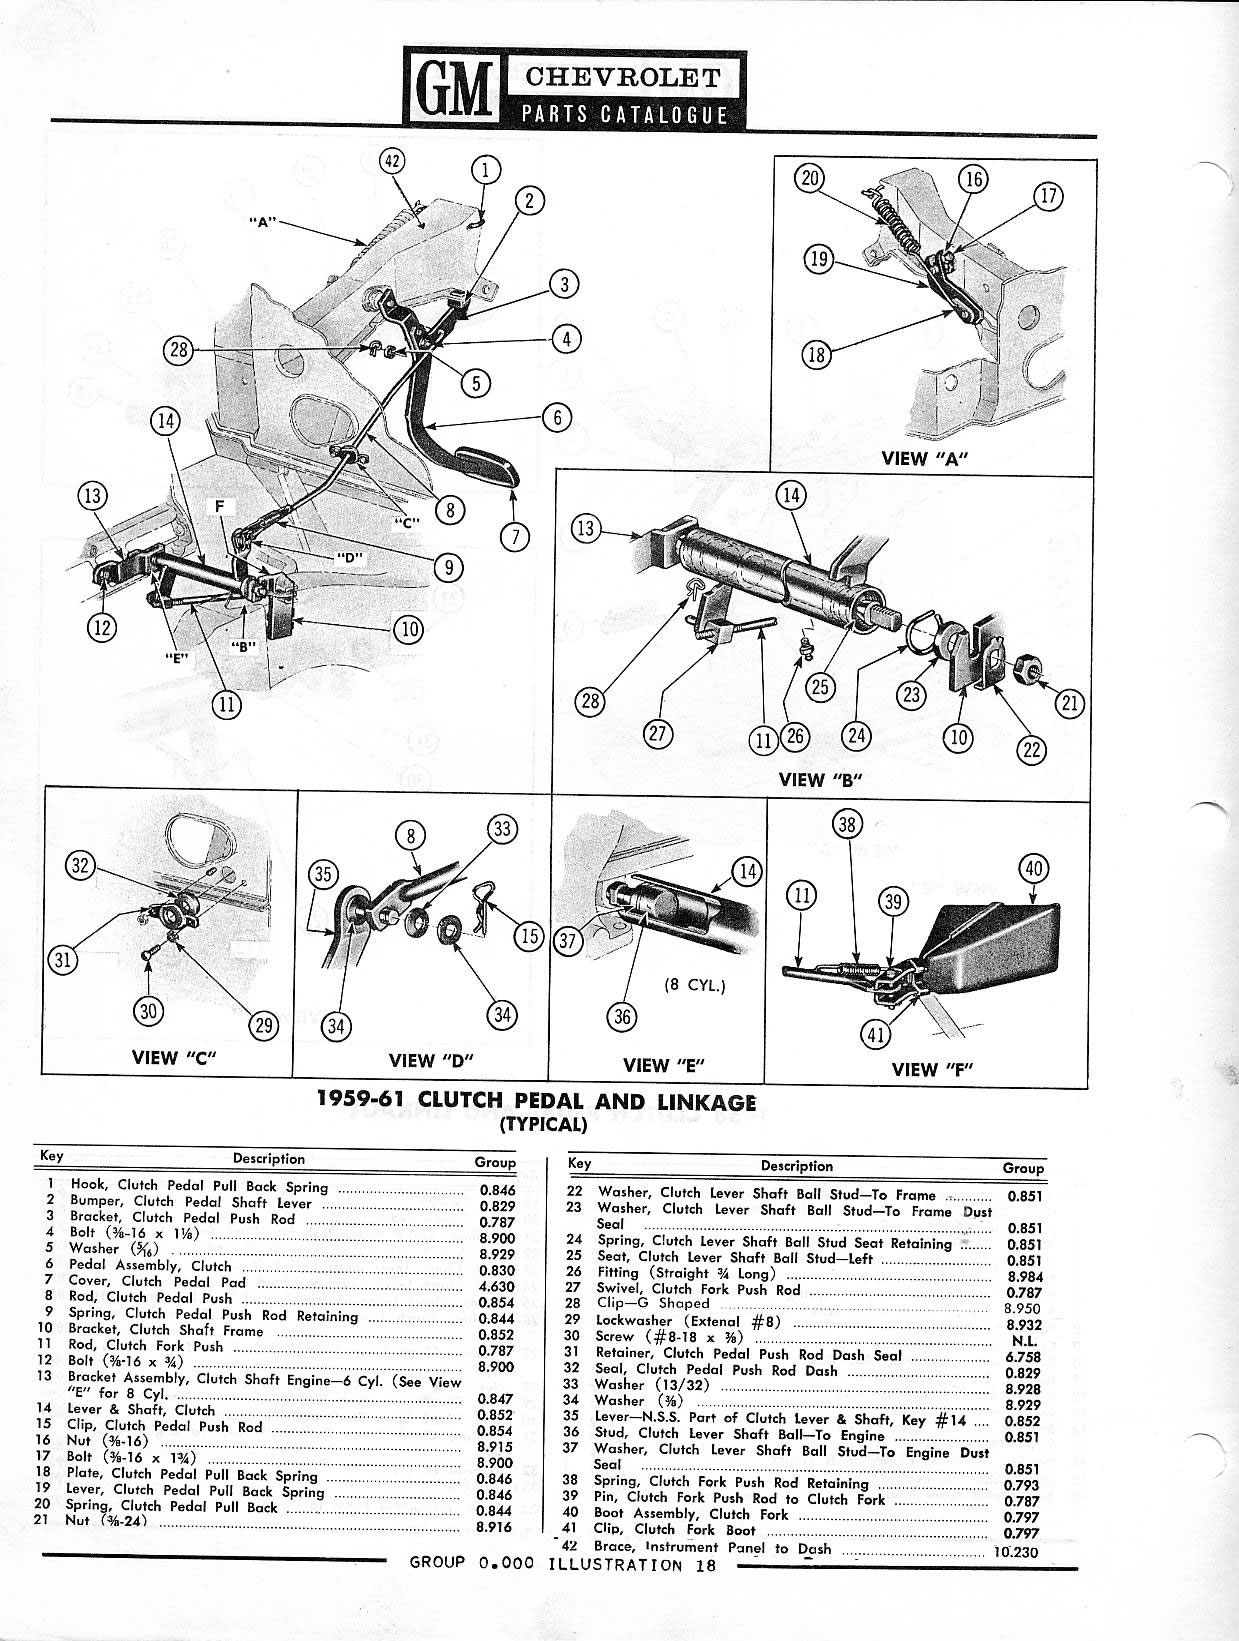 1948 Ford Truck Parts Catalog likewise Front Suspension Diagram moreover Mp50123 likewise Ignition Switch Wiring Diagram 1949 Plymouth likewise 1948 Ford Truck Parts Catalog. on 1939 chevy truck parts catalog